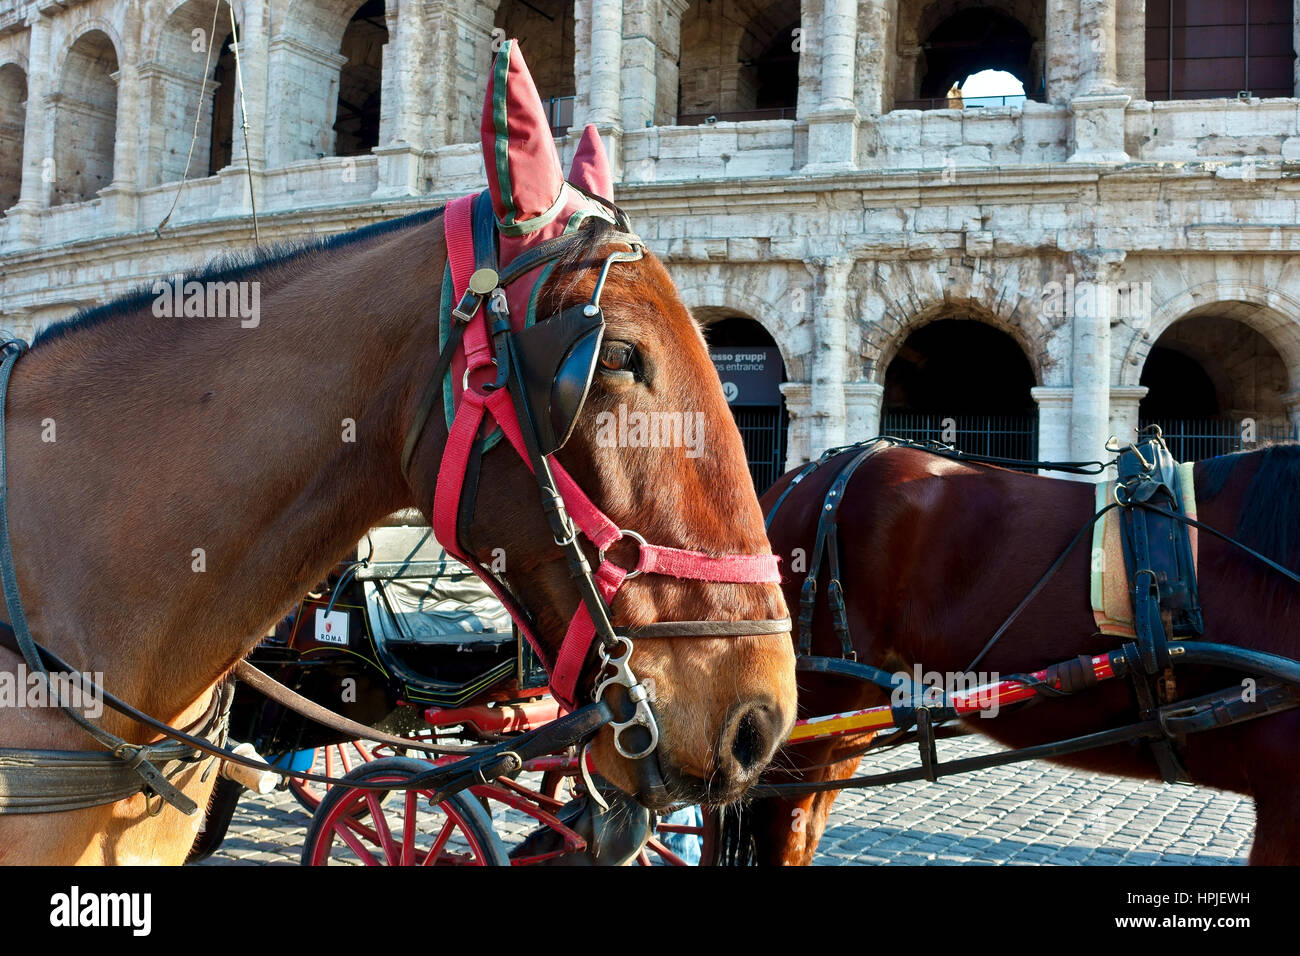 Close up of an horse used to draw the tourist carriage on city tours outside the Colosseum, Colosseo. Rome, Italy, - Stock Image